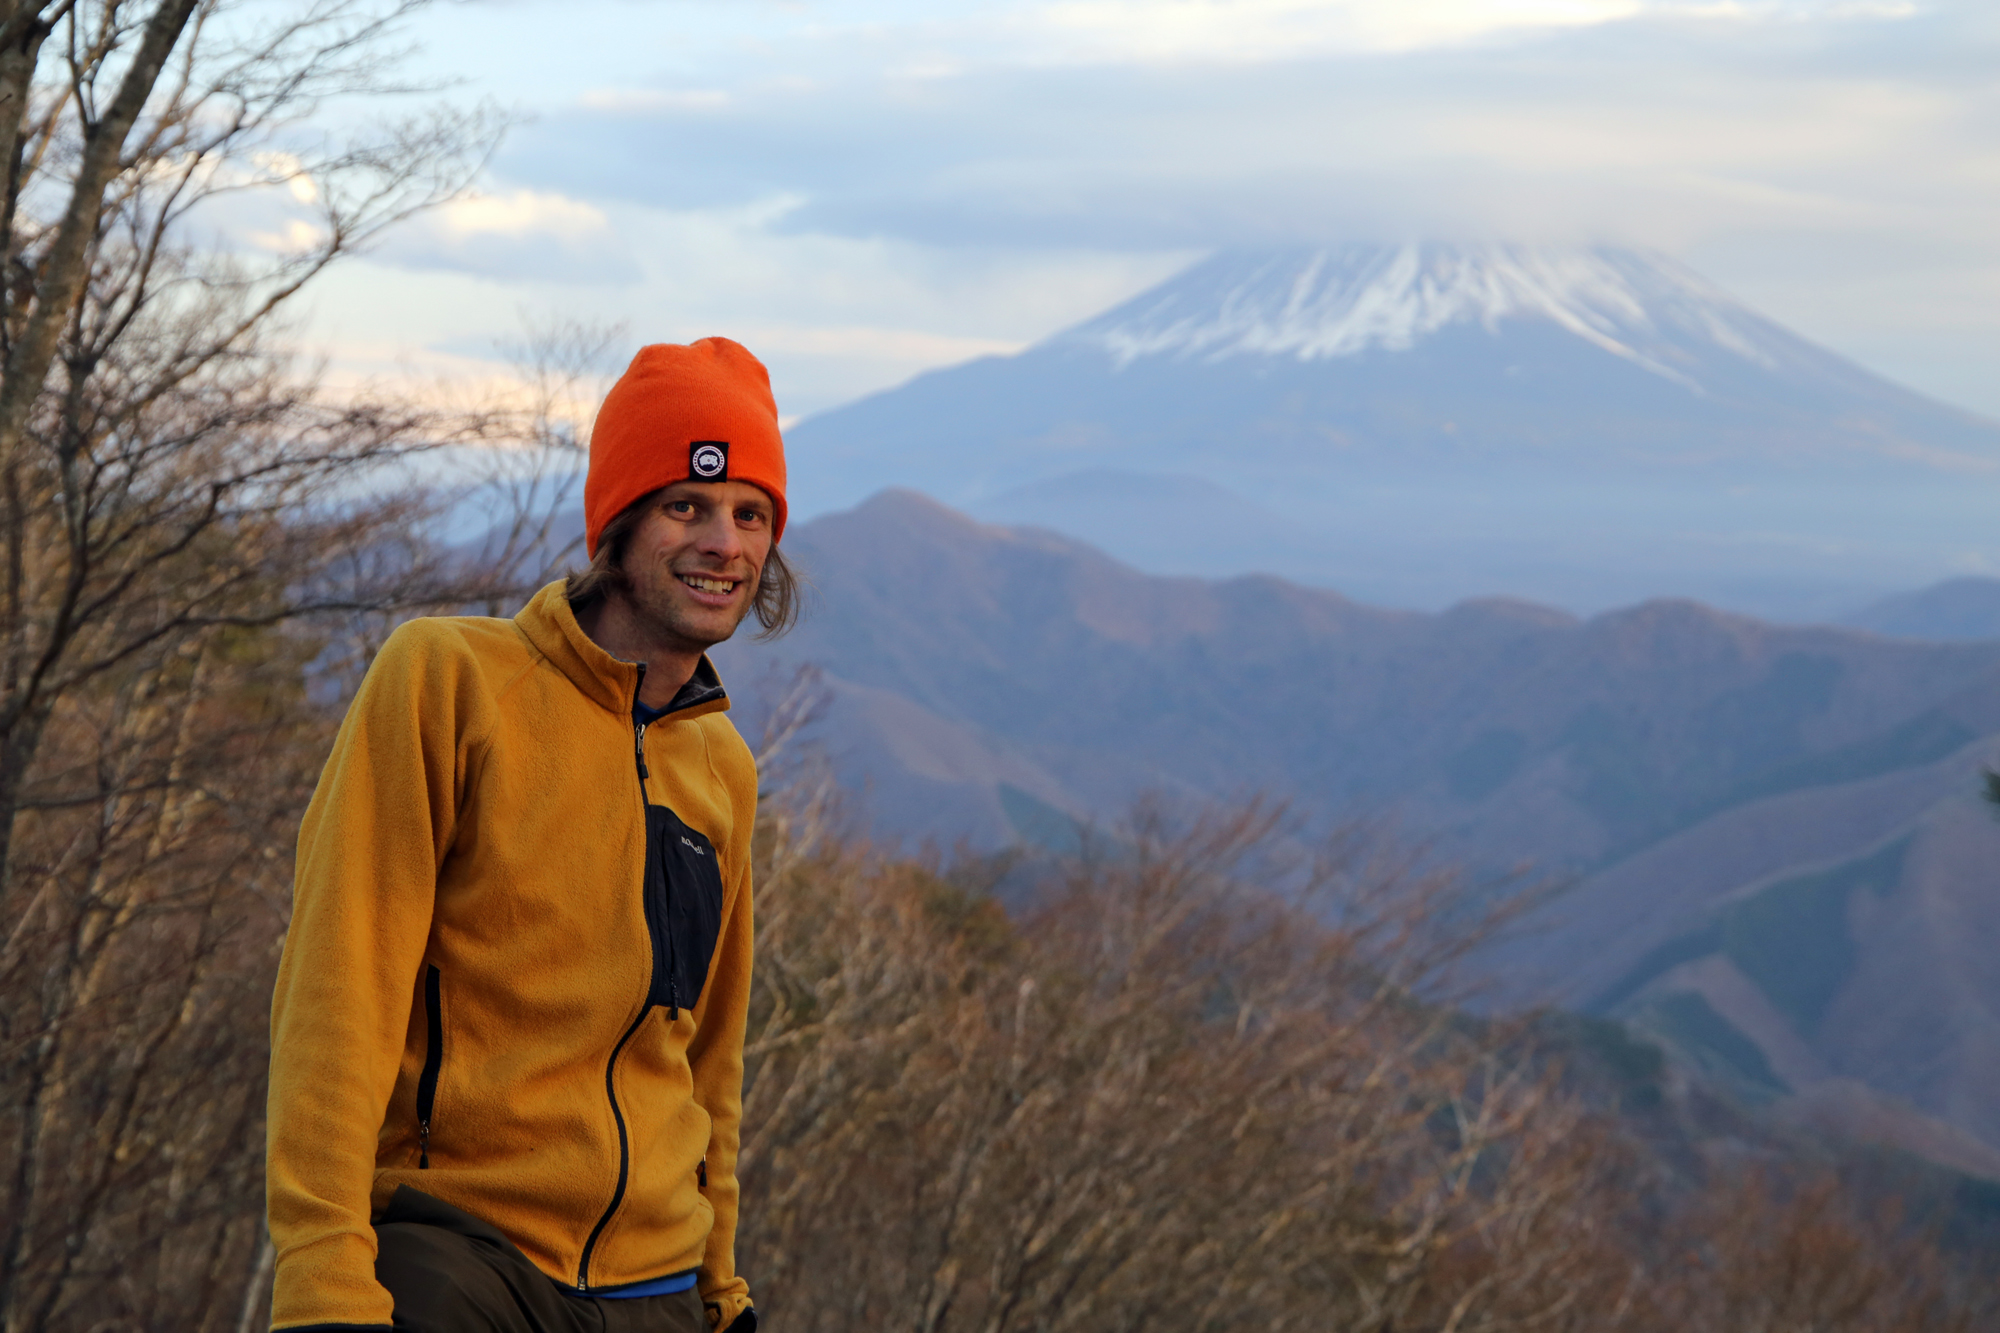 Not your typical mountain climber: Wes Lang, co-author of 'Hiking and Trekking The Japan Alps and Mount Fuji.' | COURTESY OF WES LANG